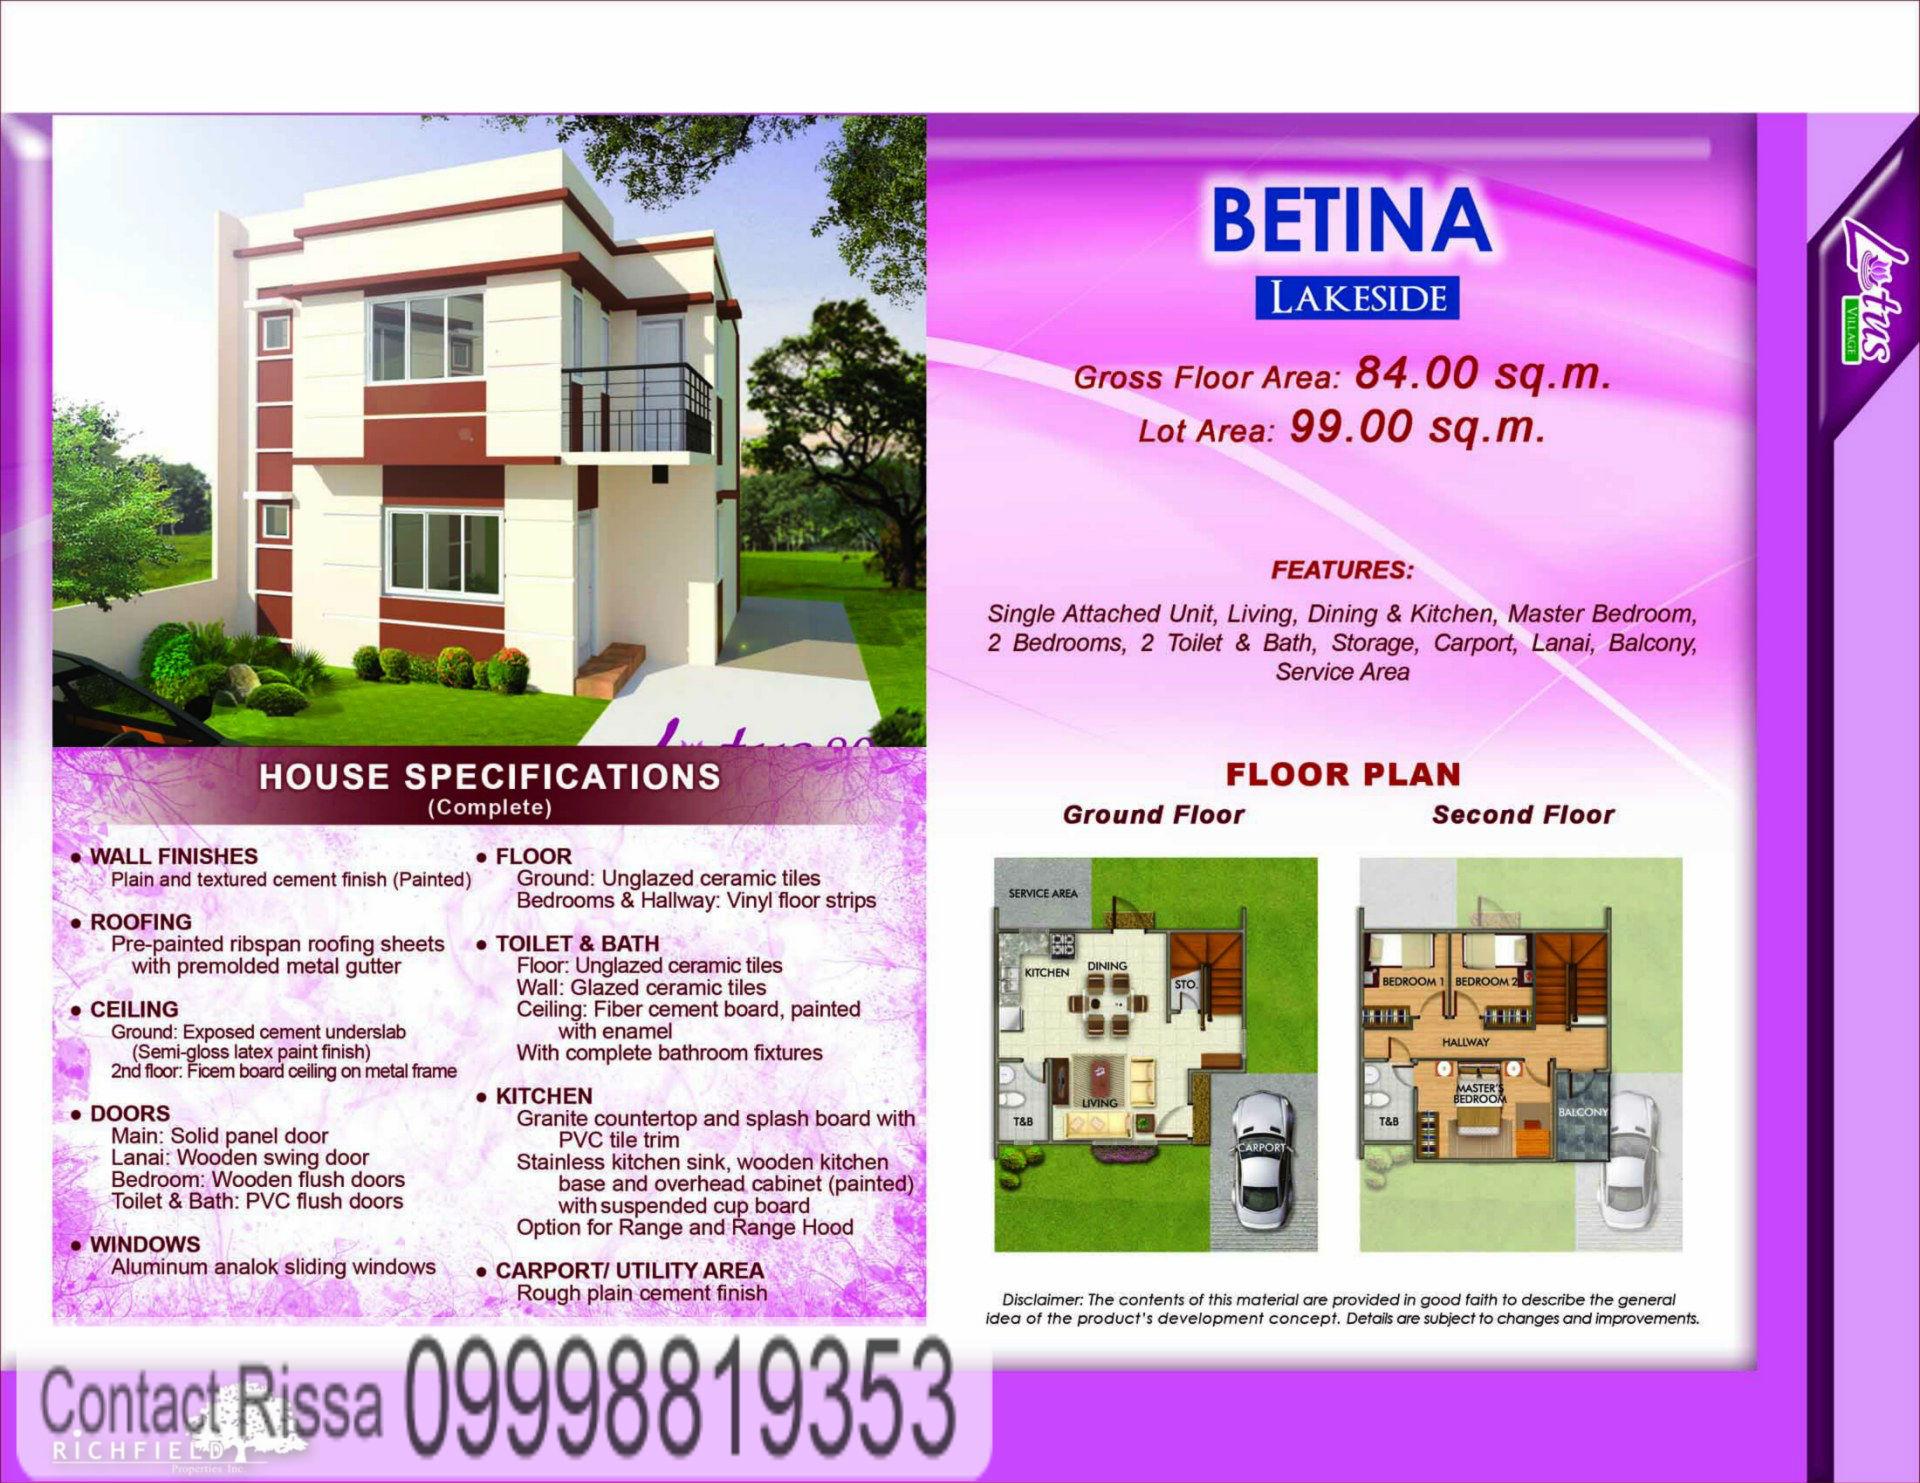 Betina House Specification